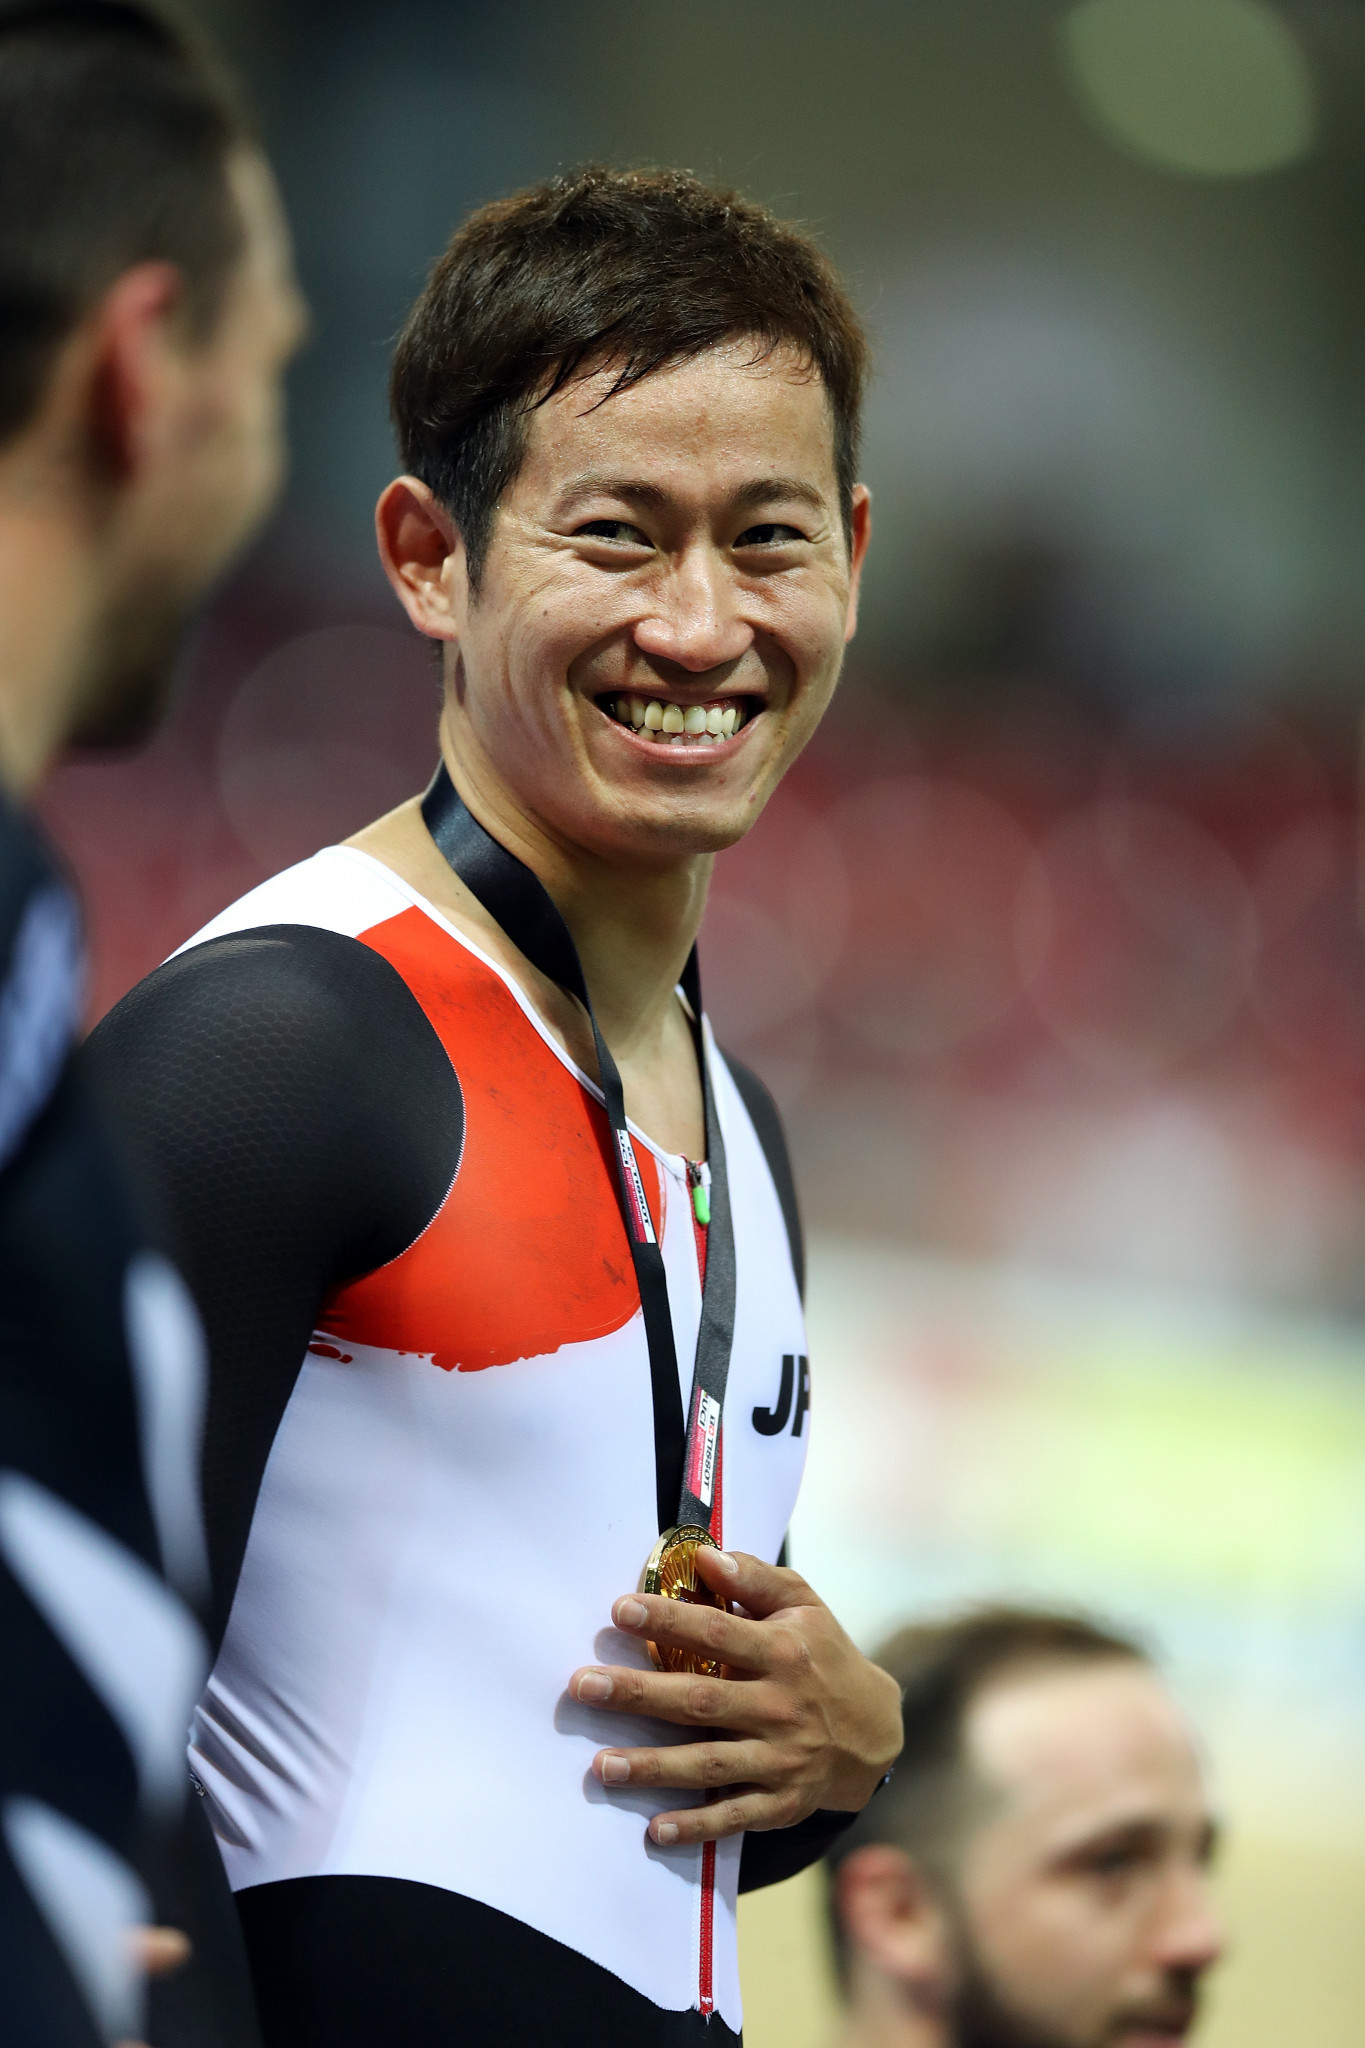 Yuta Wakimoto of Japan won the men's keirin title ©Getty Images